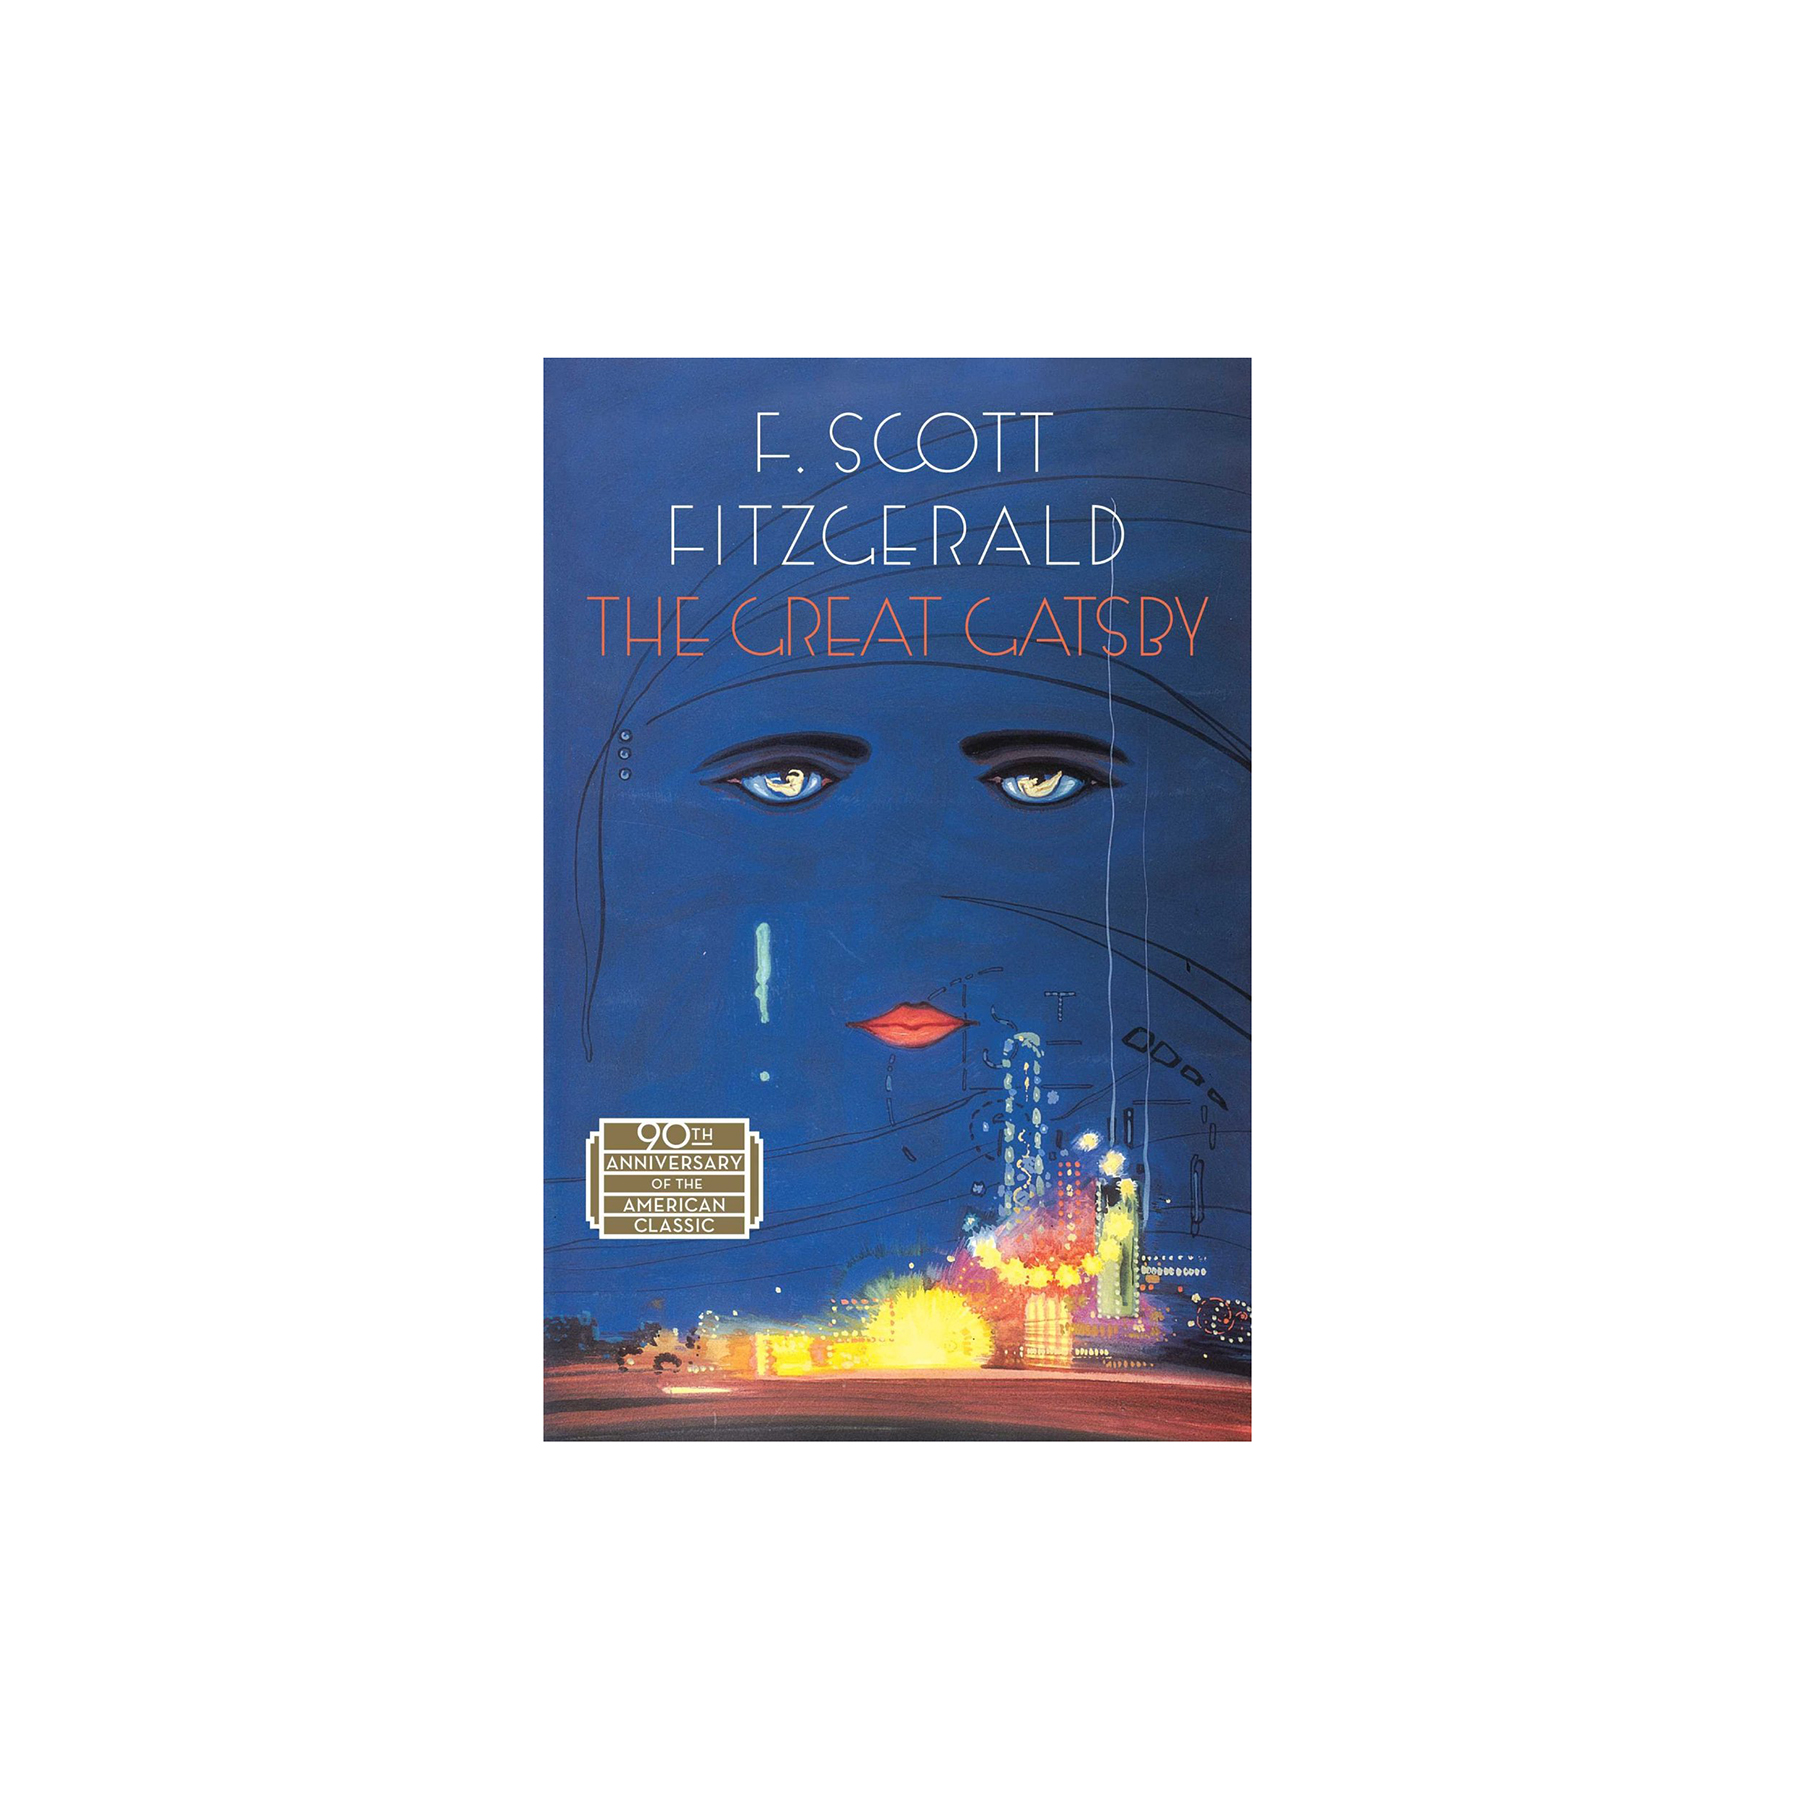 The Great Gatsby, by F. Scott Fitzgerald